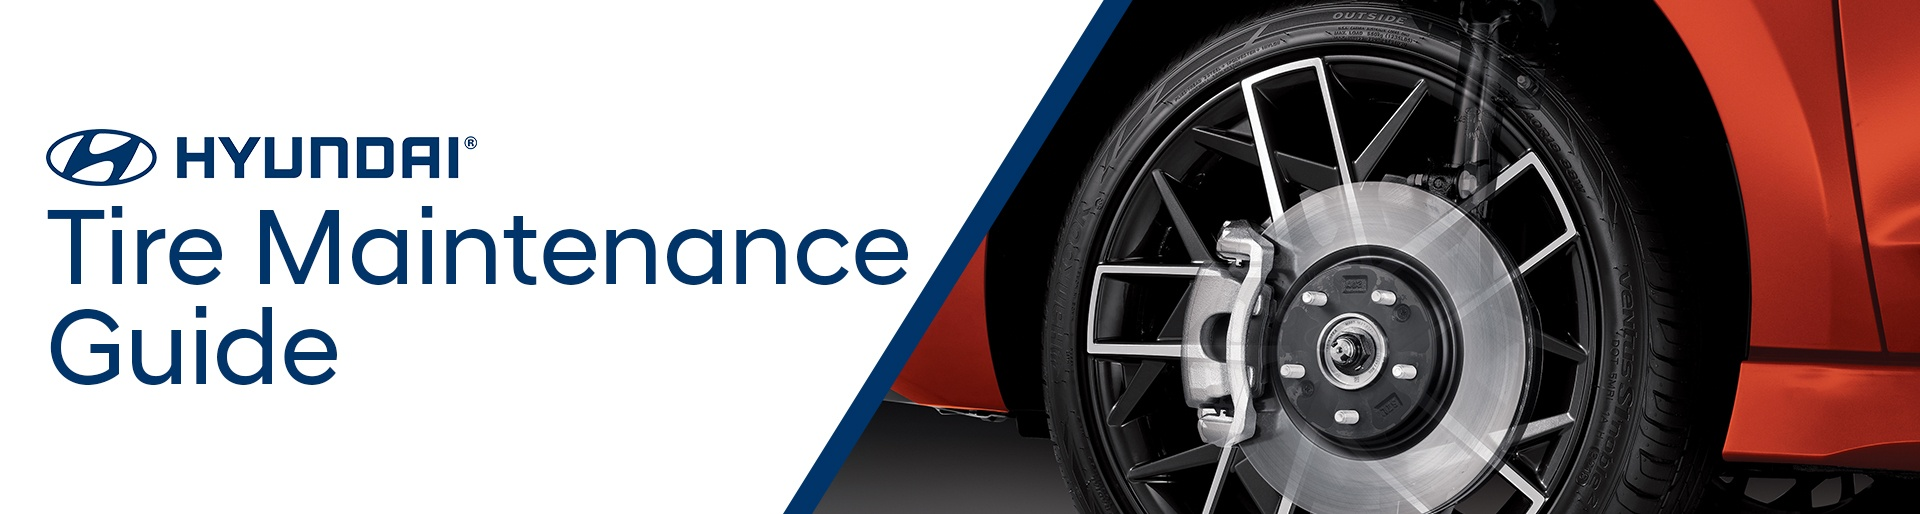 Tire Maintenance Guide Banner